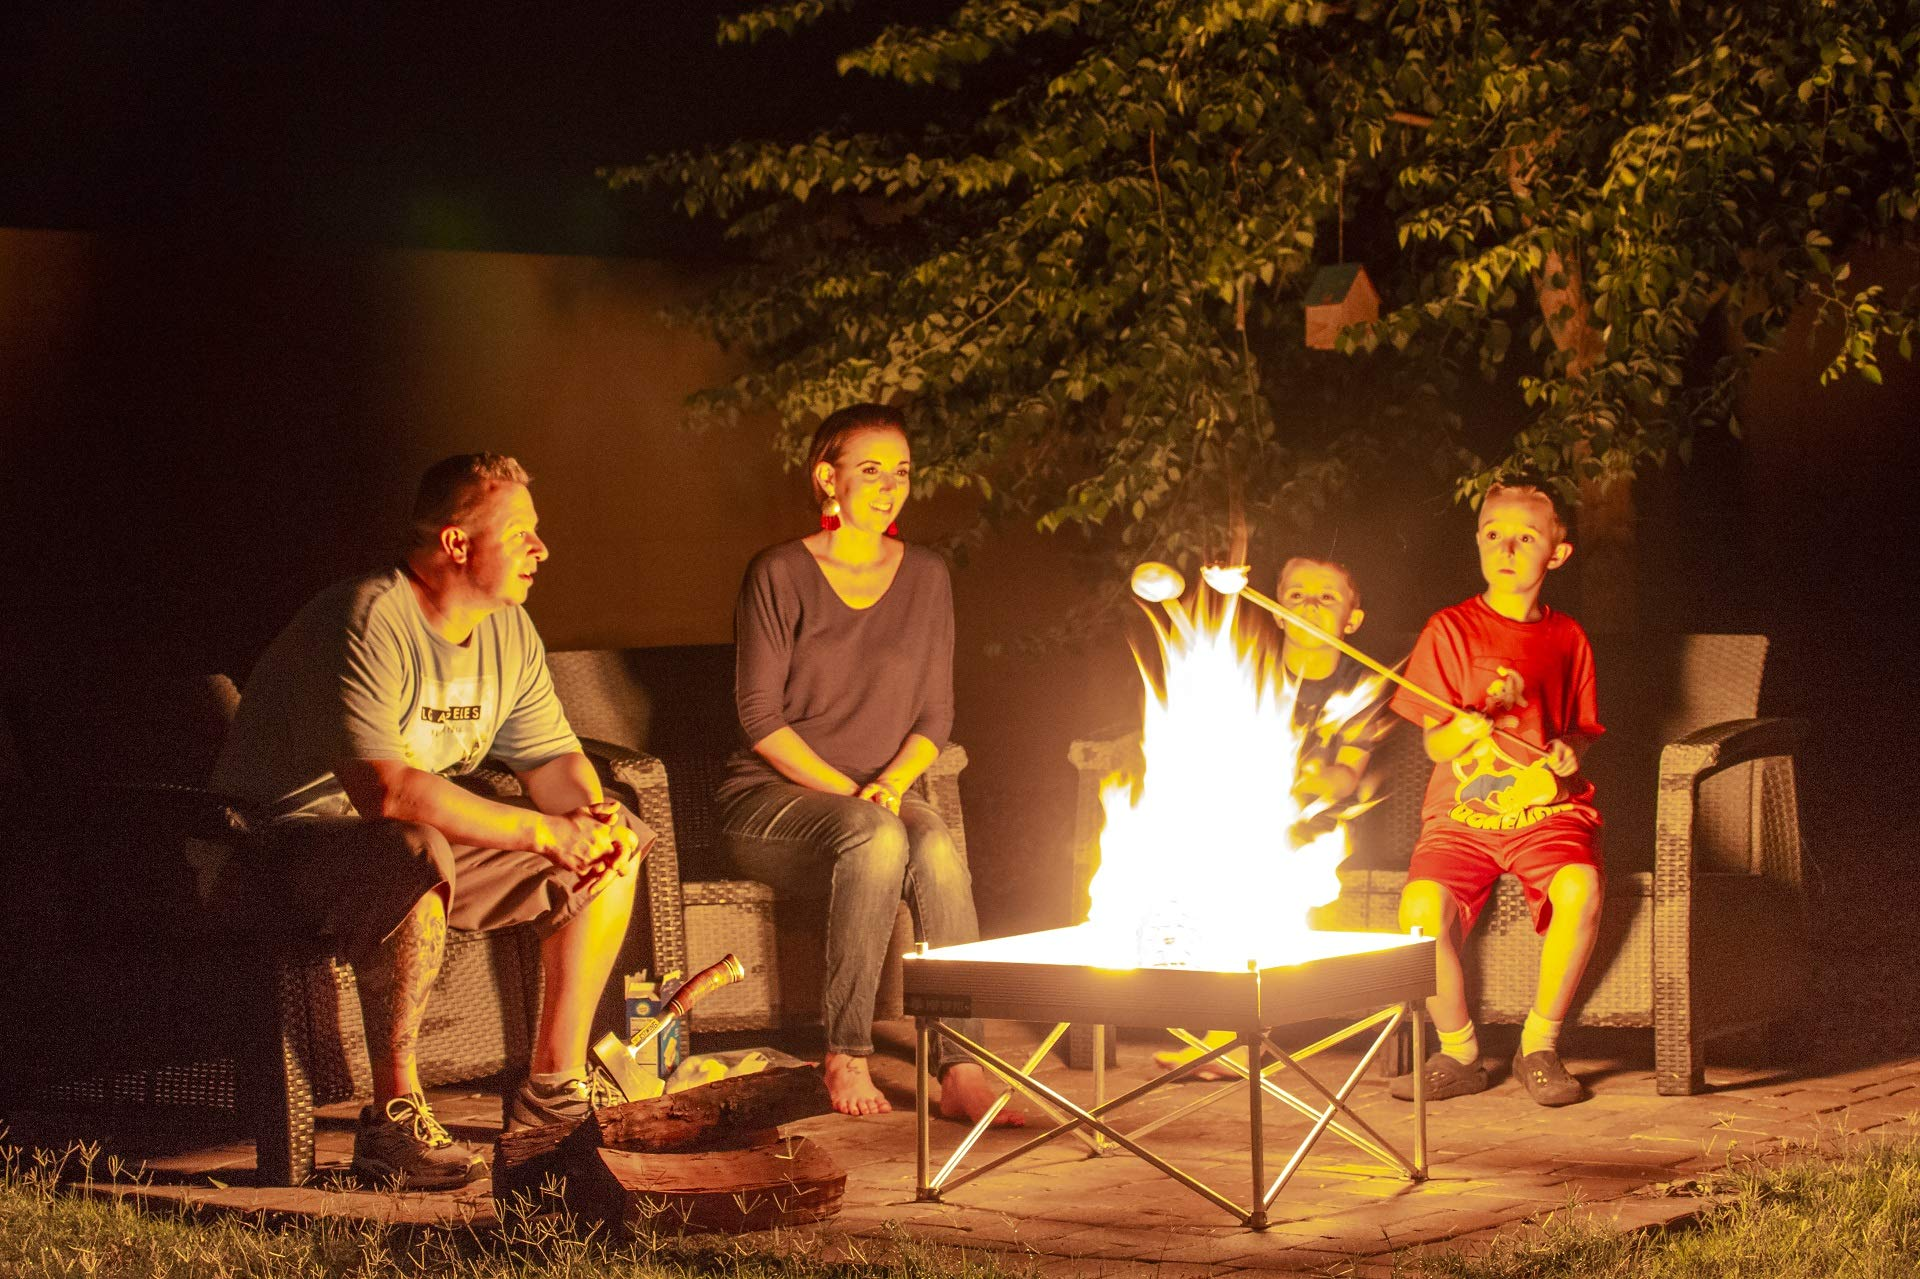 Pop-Up Fire Pit - Portable Outdoor Fire Pit for Patio, Backyard or Backwoods. Clean Burn Tech, Less Smoke - Great For Tailgating, Cabins, RV's and the Beach (Pop-Up Pit Base Kit)